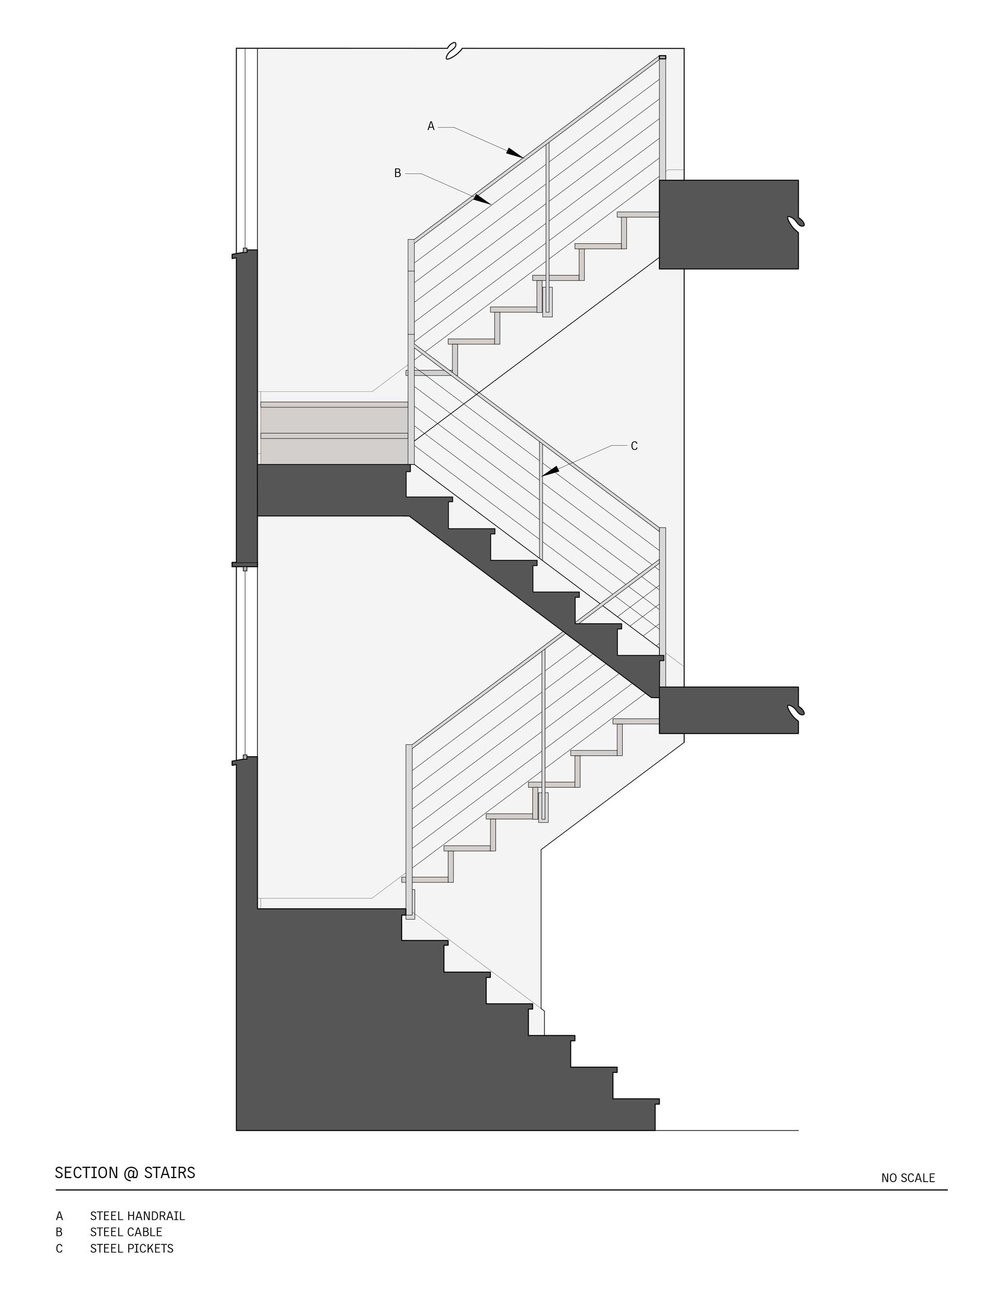 Stairs - Section